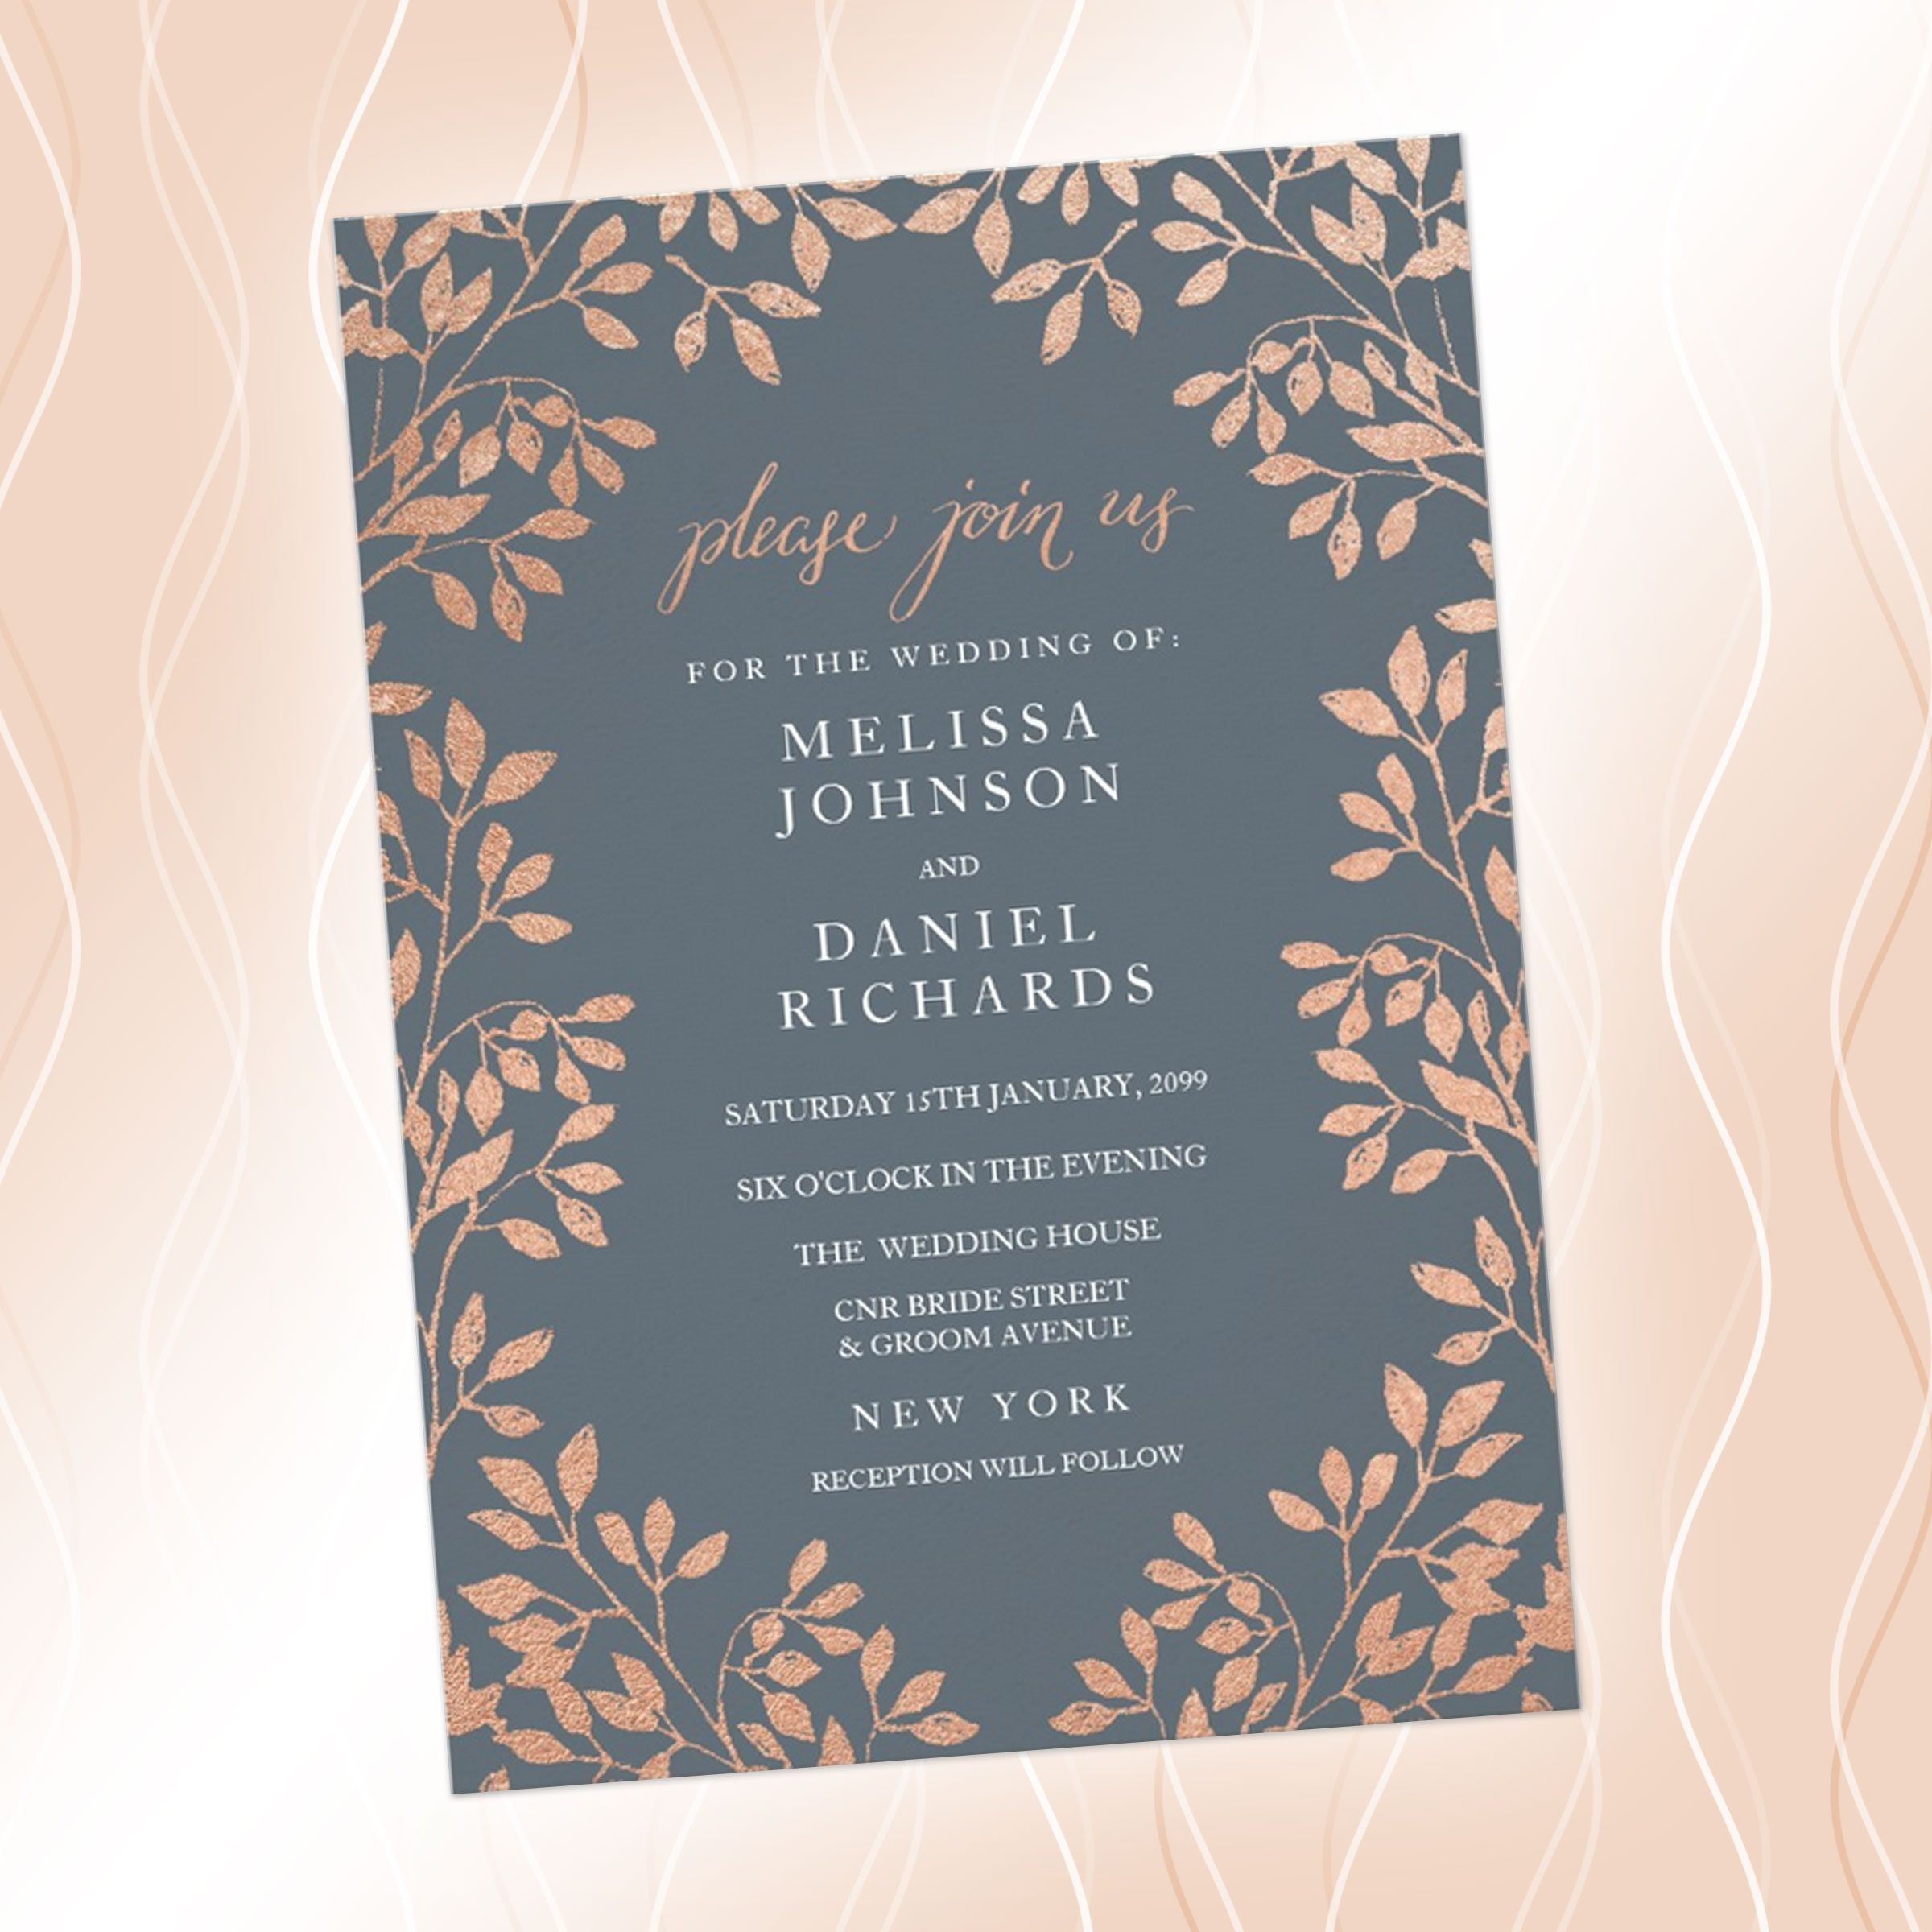 3 Rustic Wedding Invitation Card With Border Of Bronze Leaves